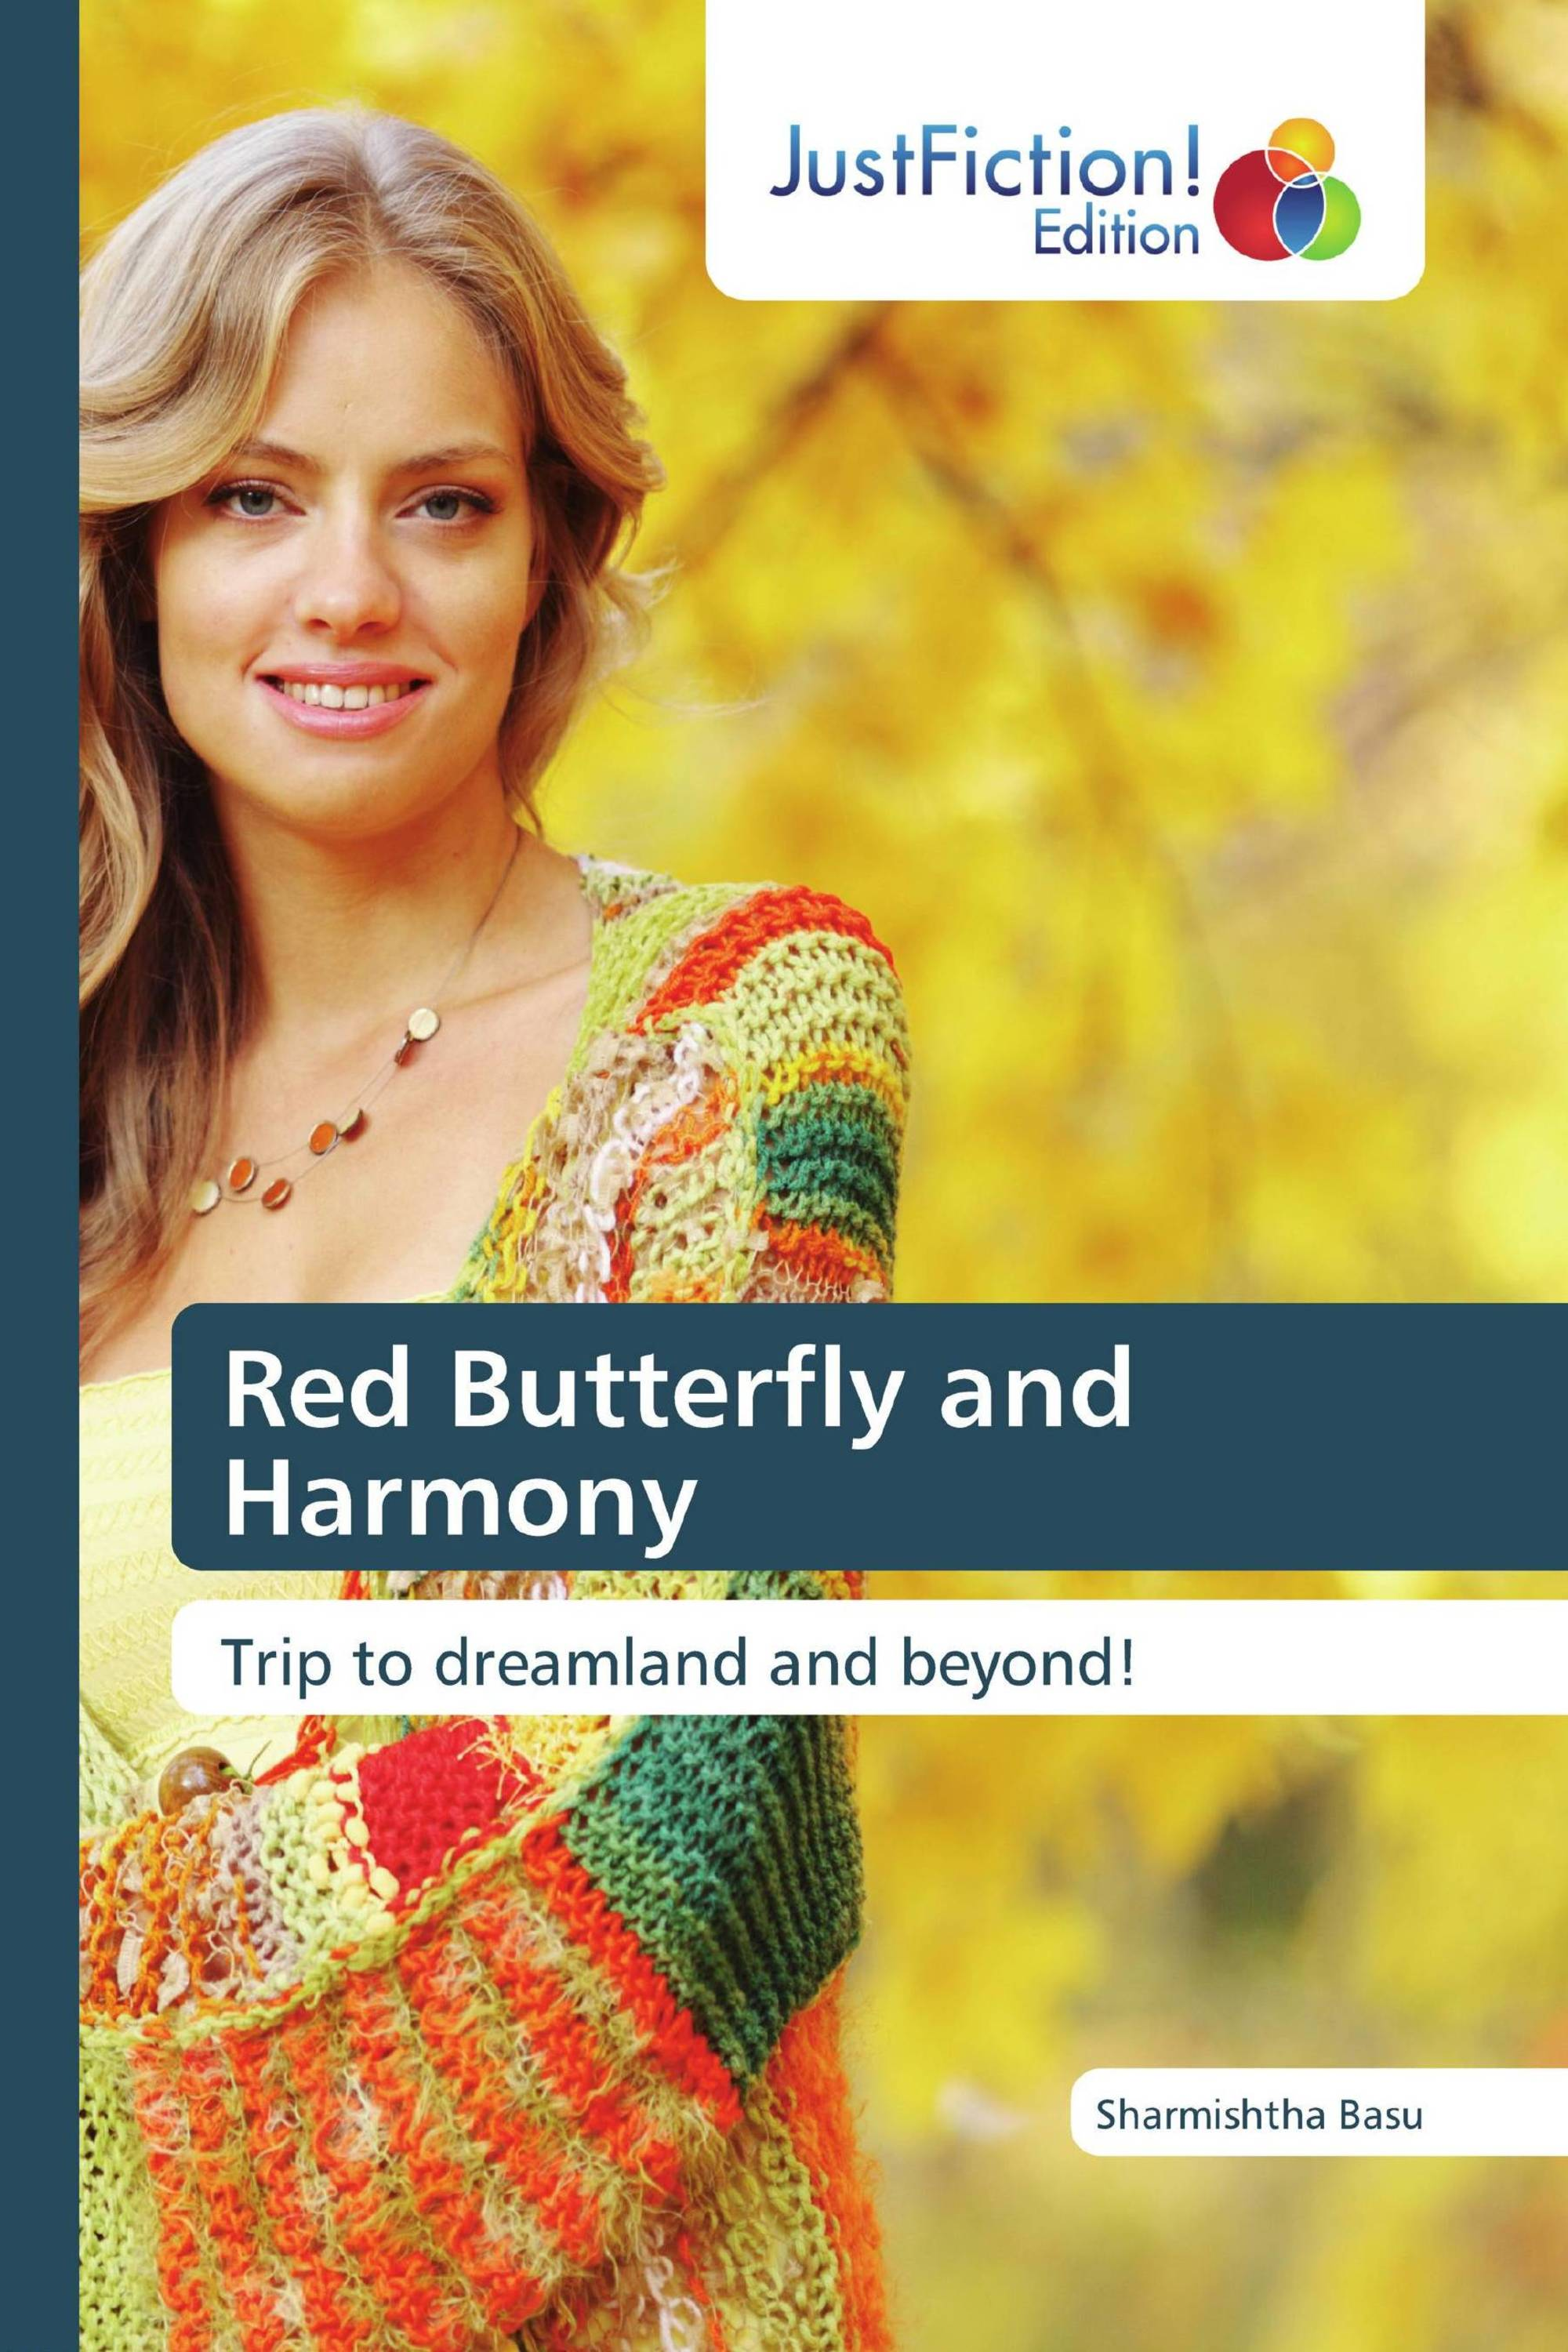 Red Butterfly and Harmony